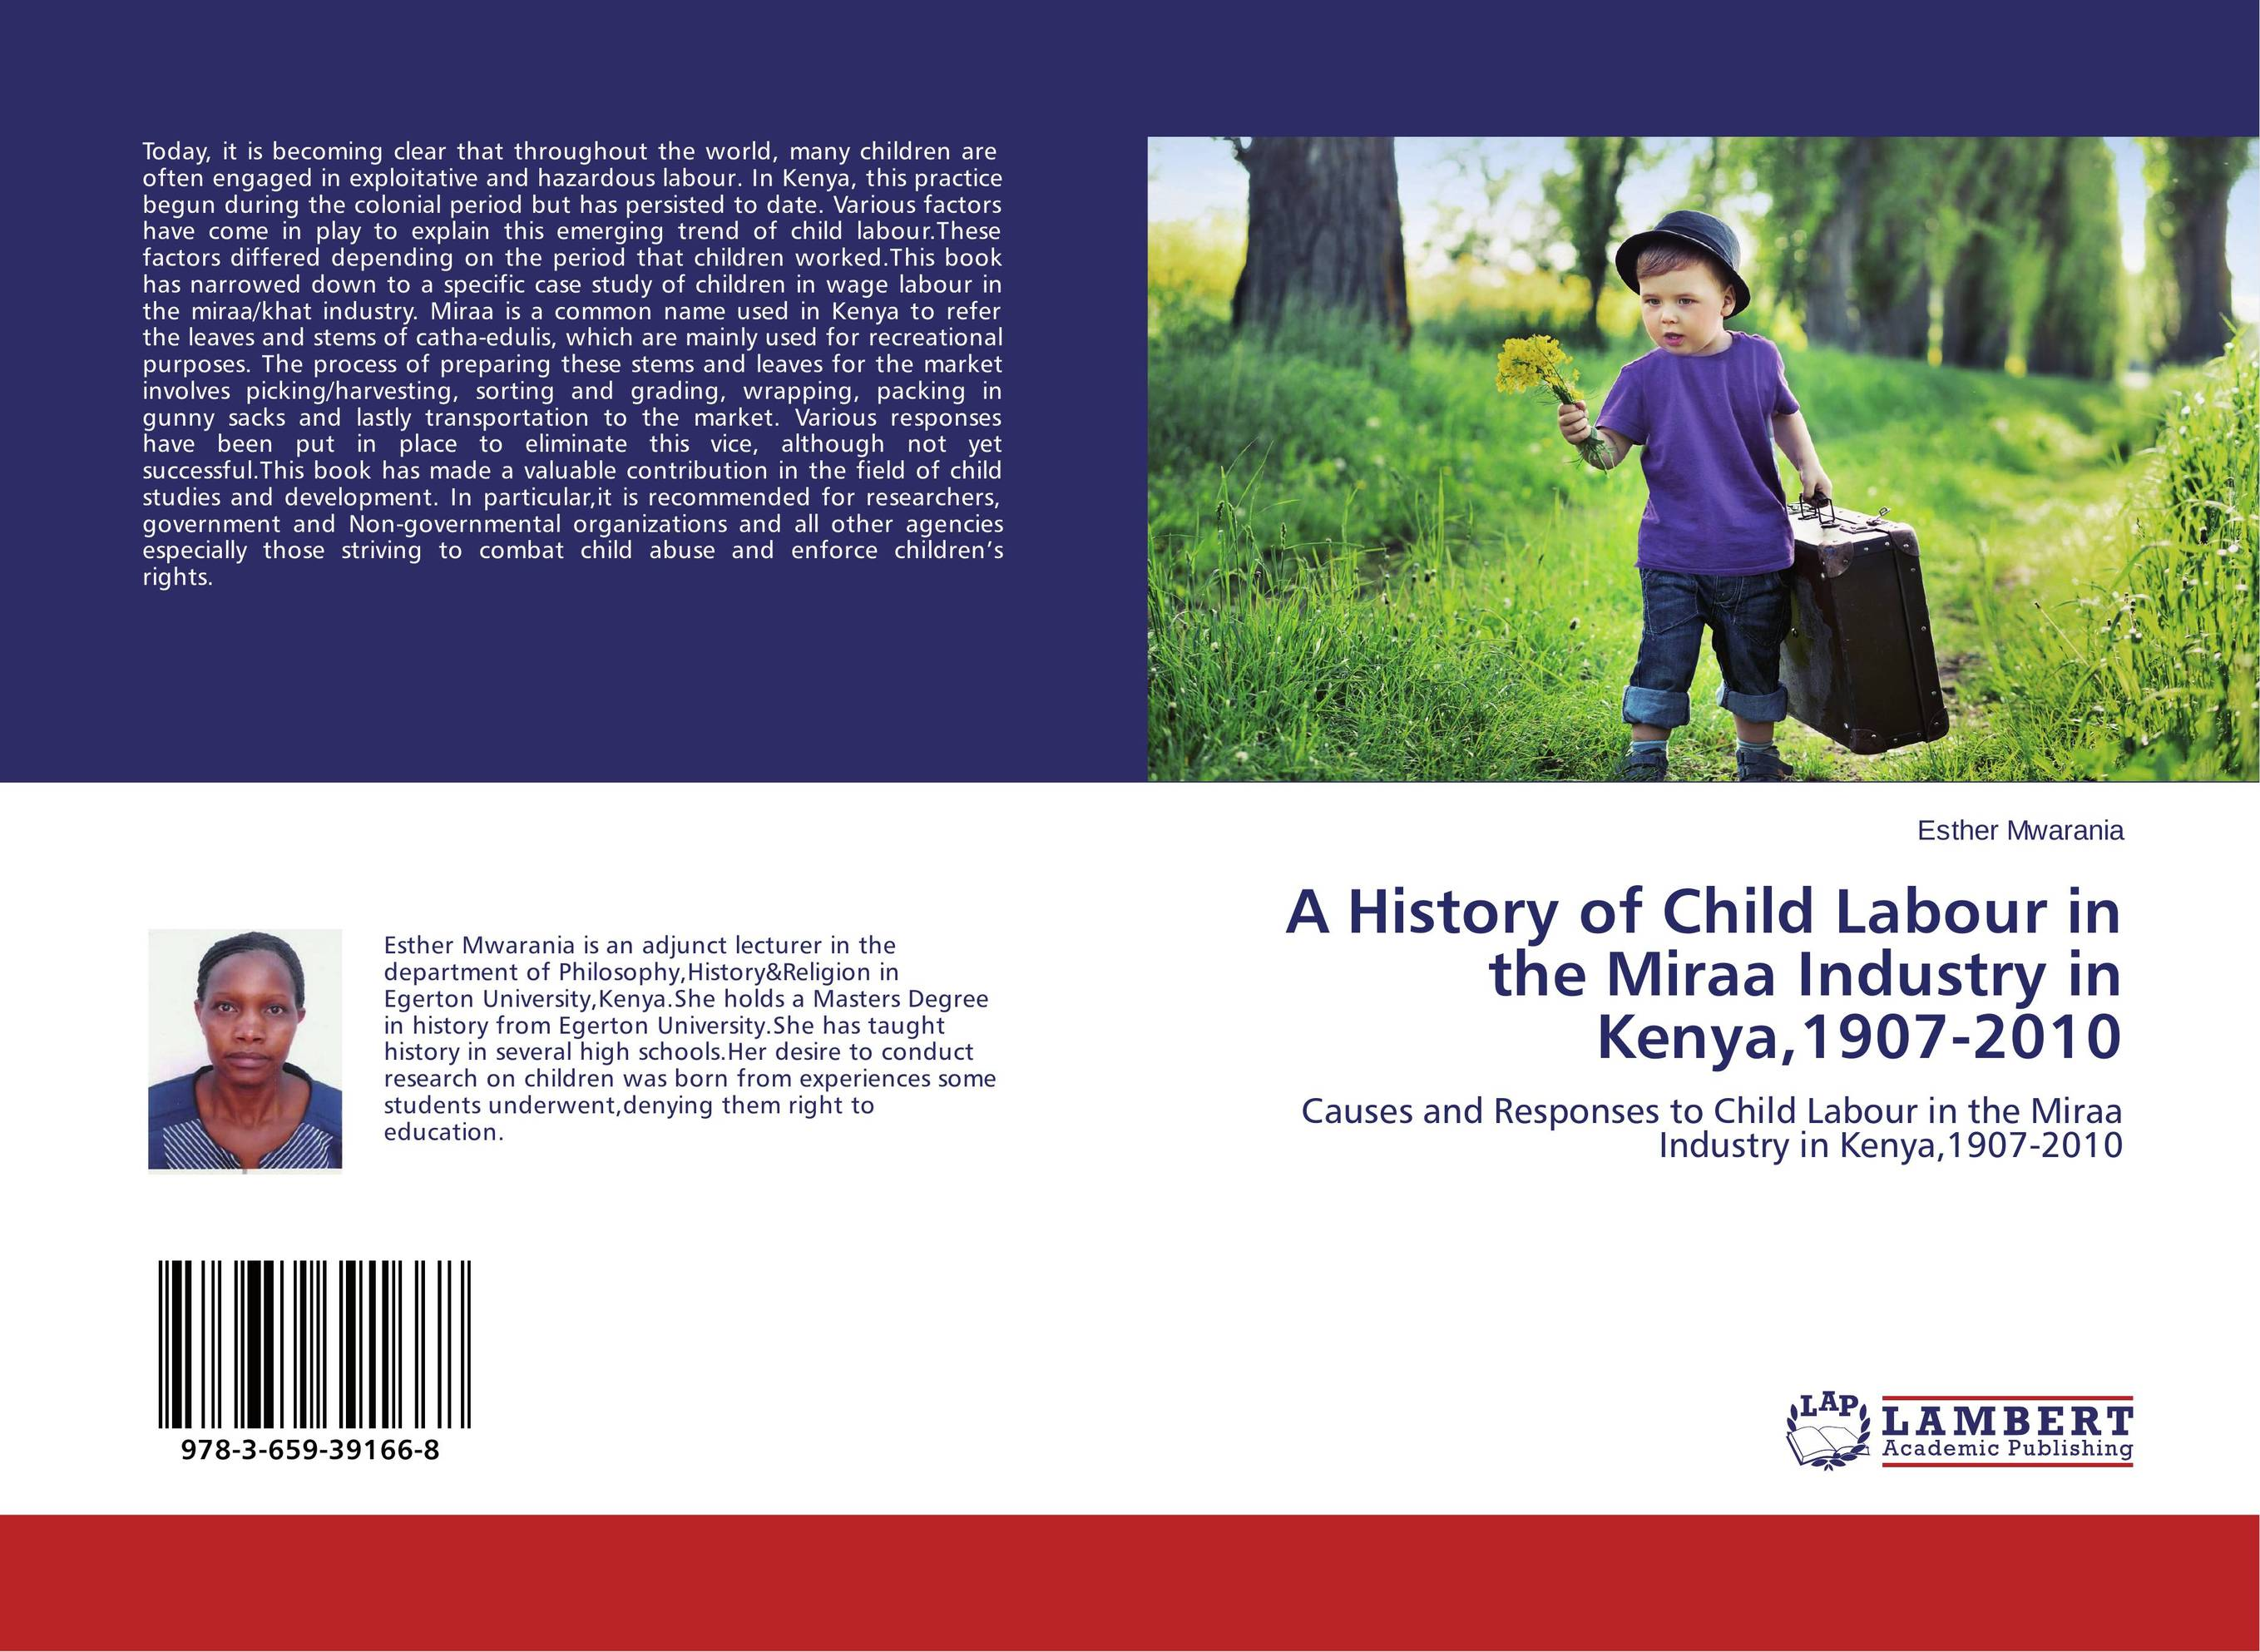 A History of Child Labour in the Miraa Industry in Kenya,1907-2010 psychiatric disorders in postpartum period